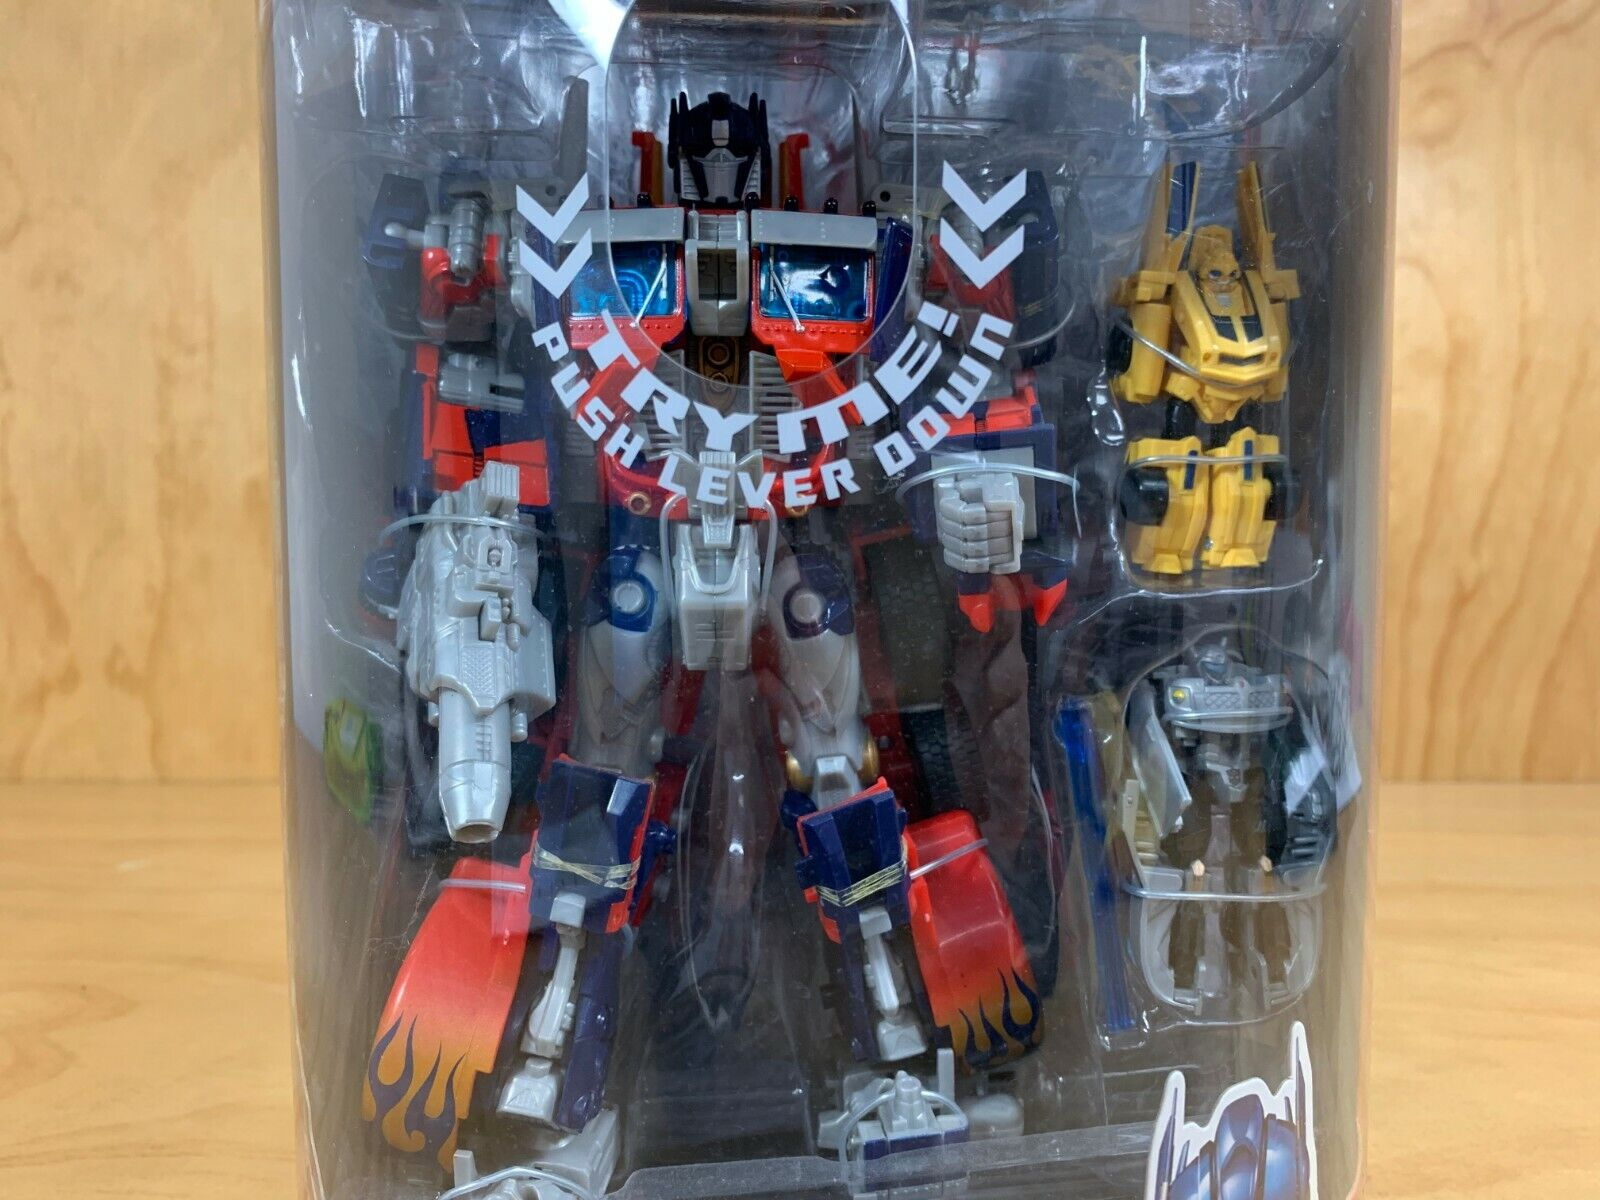 HASBRO TRANSFORMERS OPTIMUS PRIME COSTCO EXCLUSIVE BUMBLEBEE JAZZ FIGURINE NEW